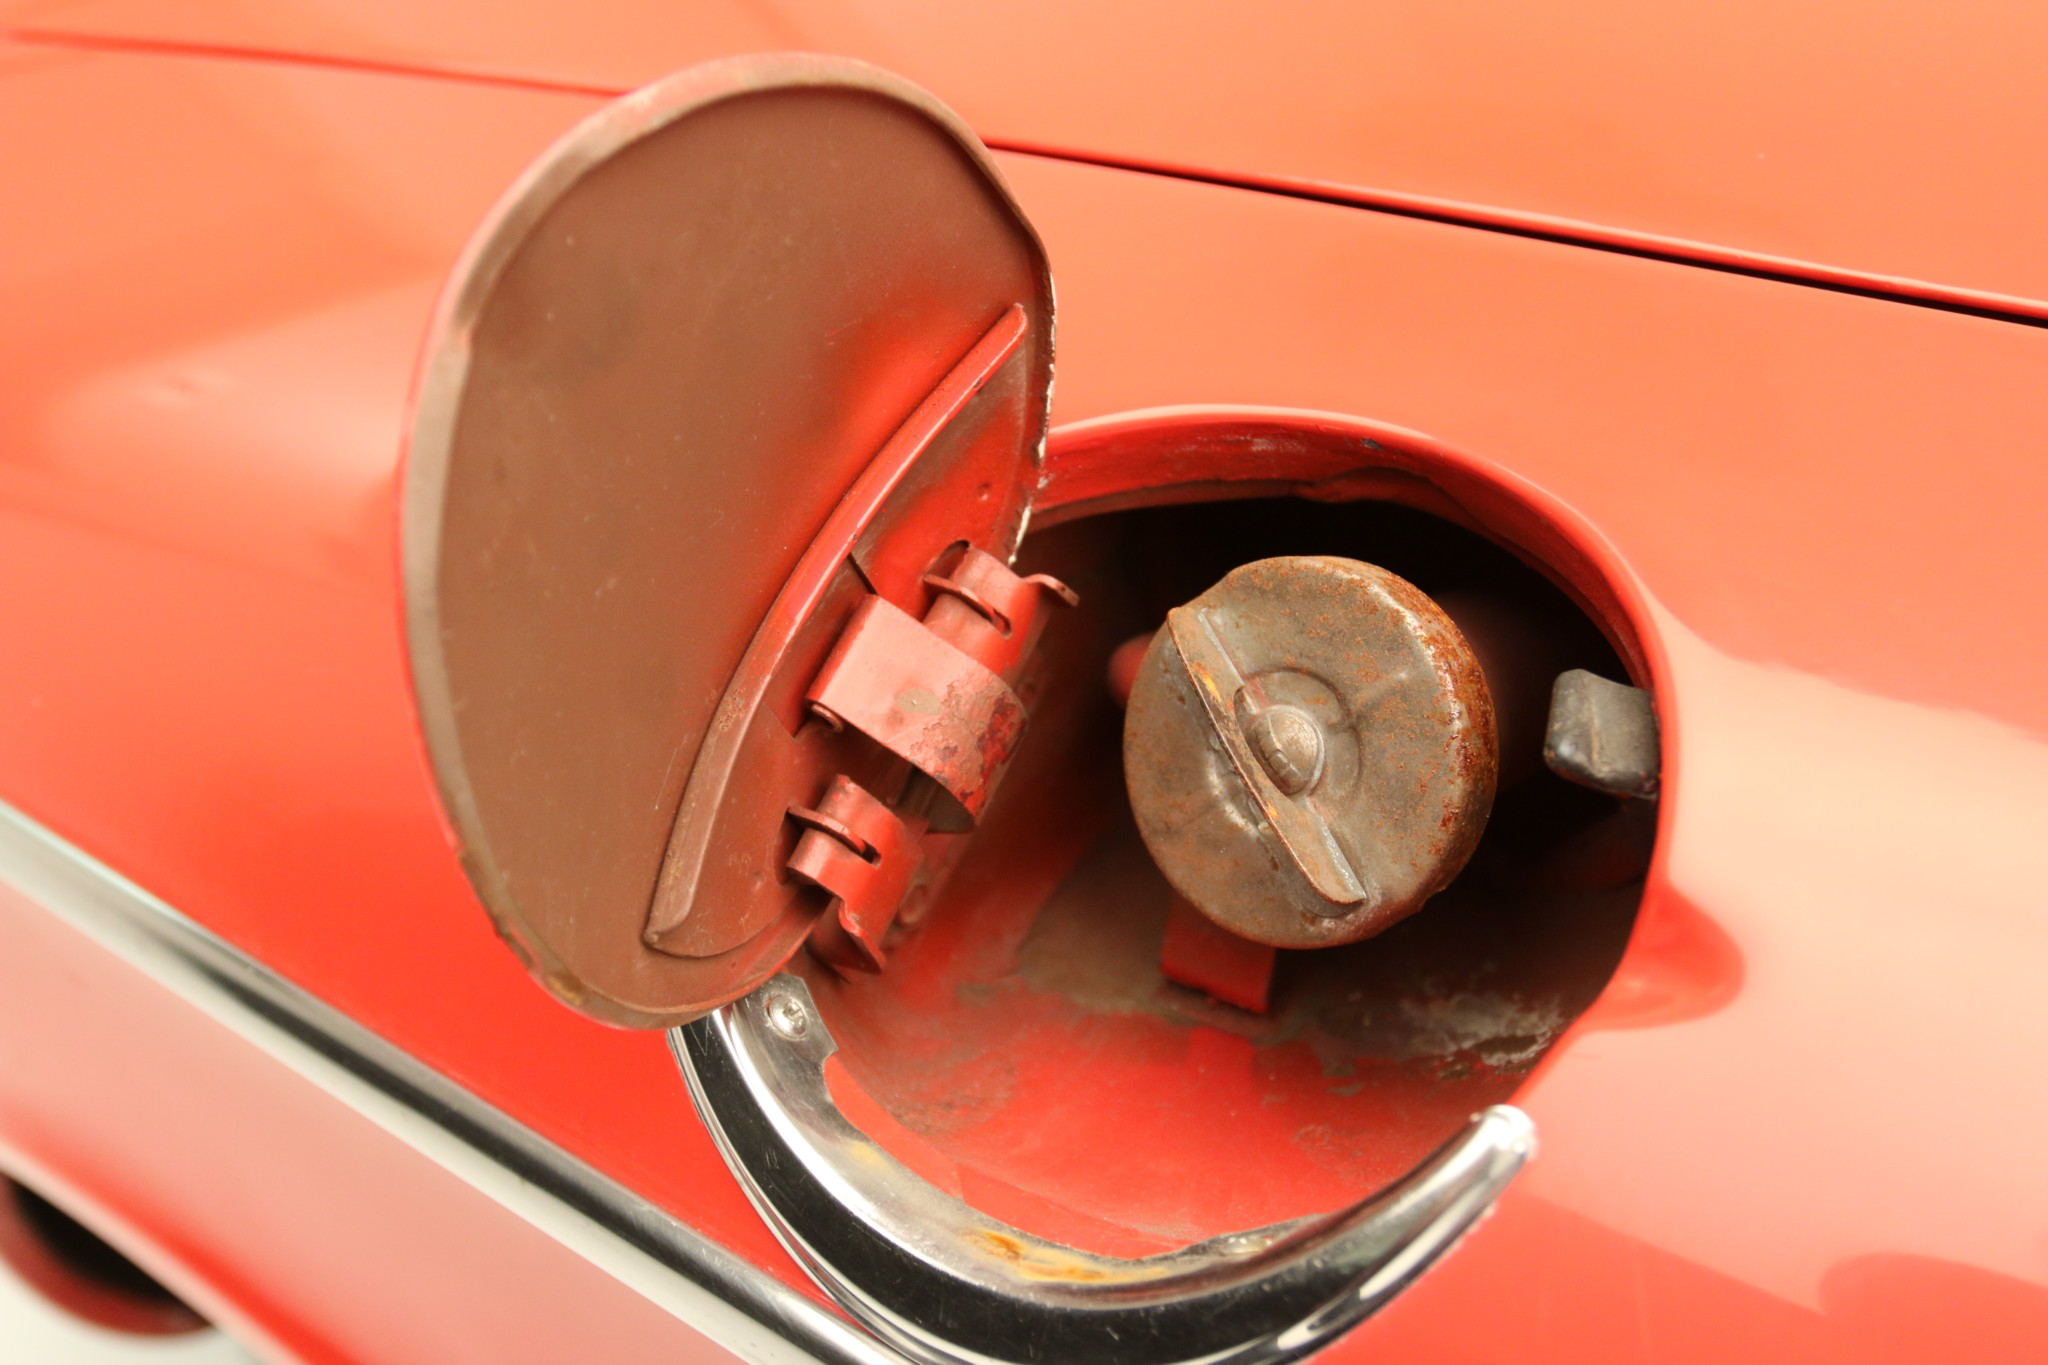 1960 Chevrolet Corvair 700 fuel filler